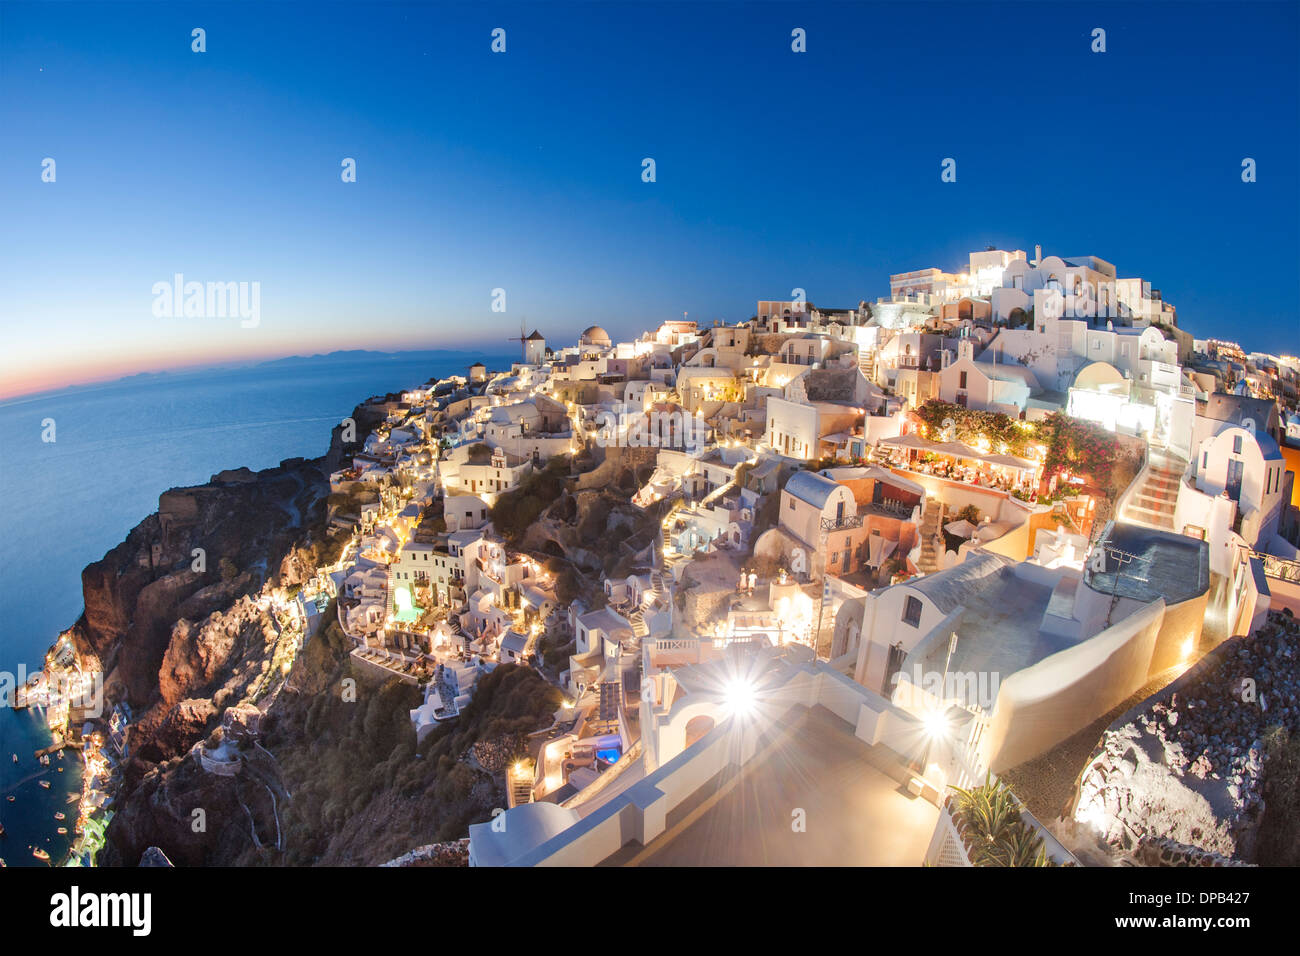 Houses of the village of Oia on the Greek island of Santorini. - Stock Image